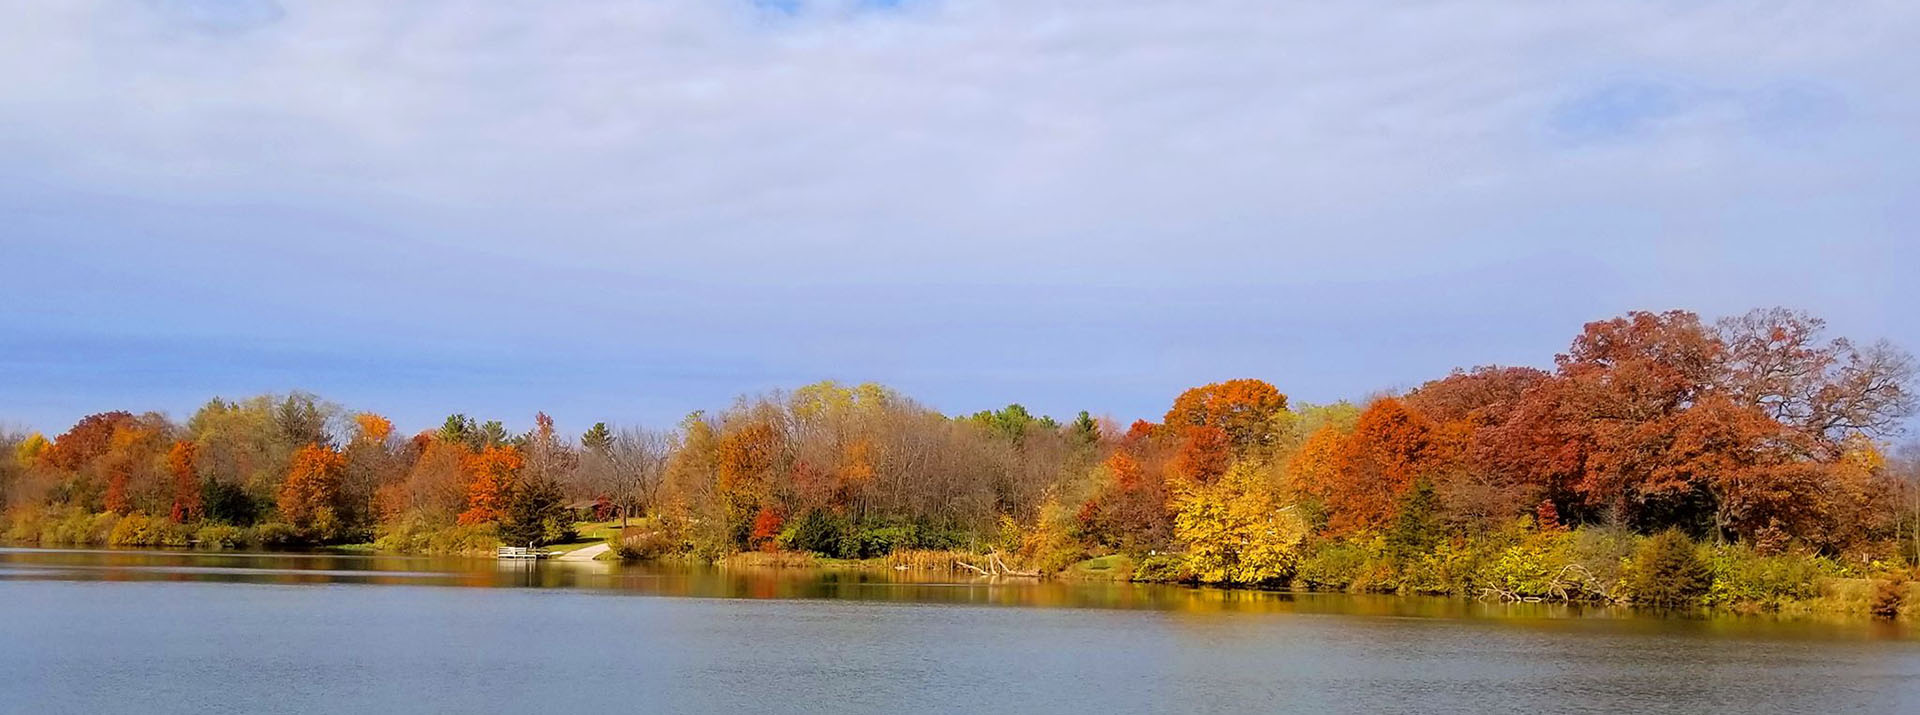 Lake surrounded by trees in autumn